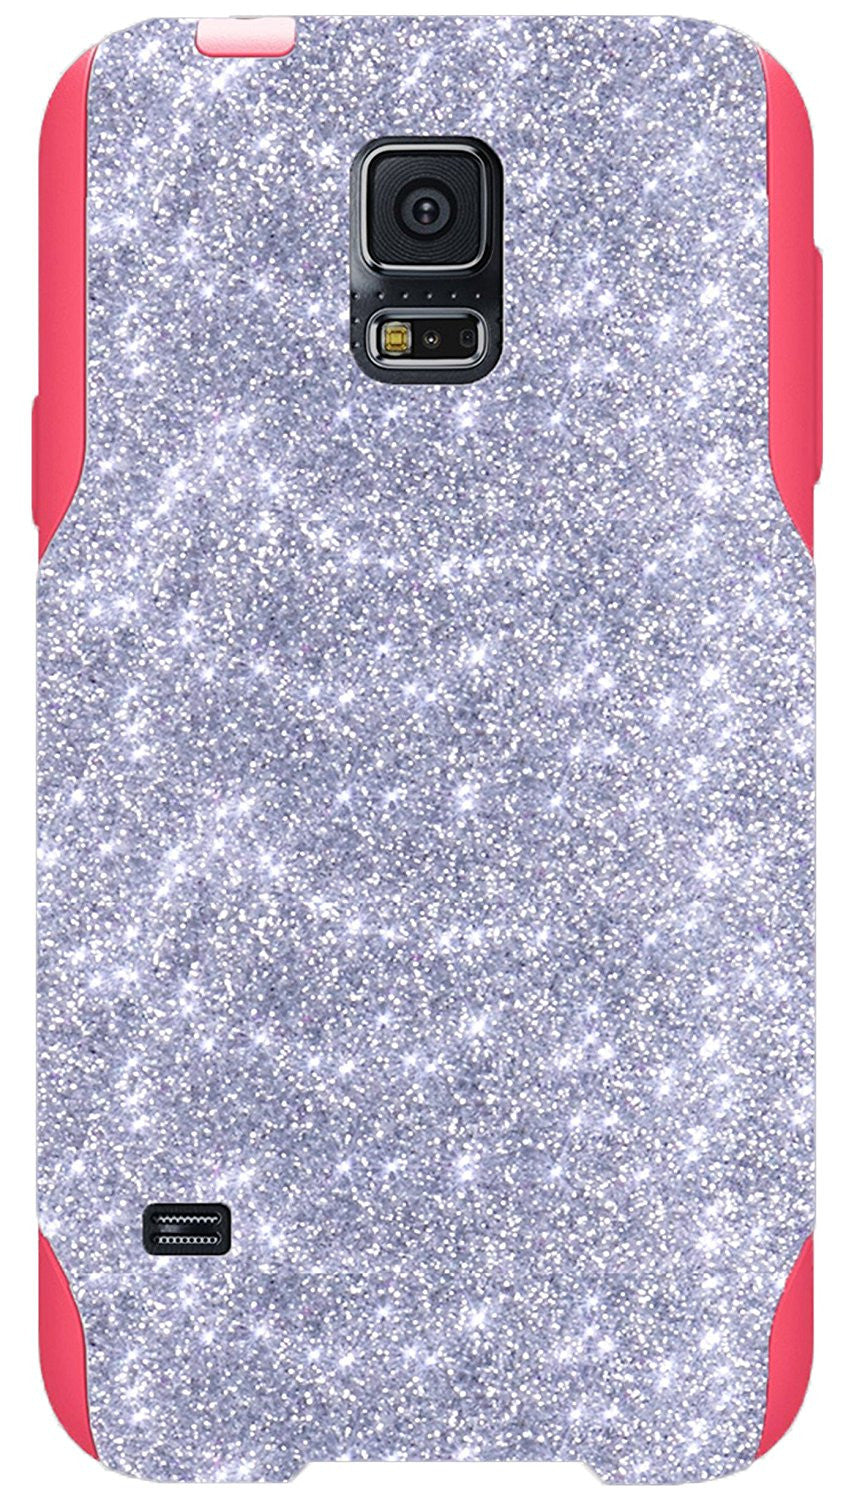 huge discount cc2b9 2ae35 OtterBox Commuter Series Case for Galaxy S5 - Custom Glitter Case for  Galaxy S5 - Silver/Pink